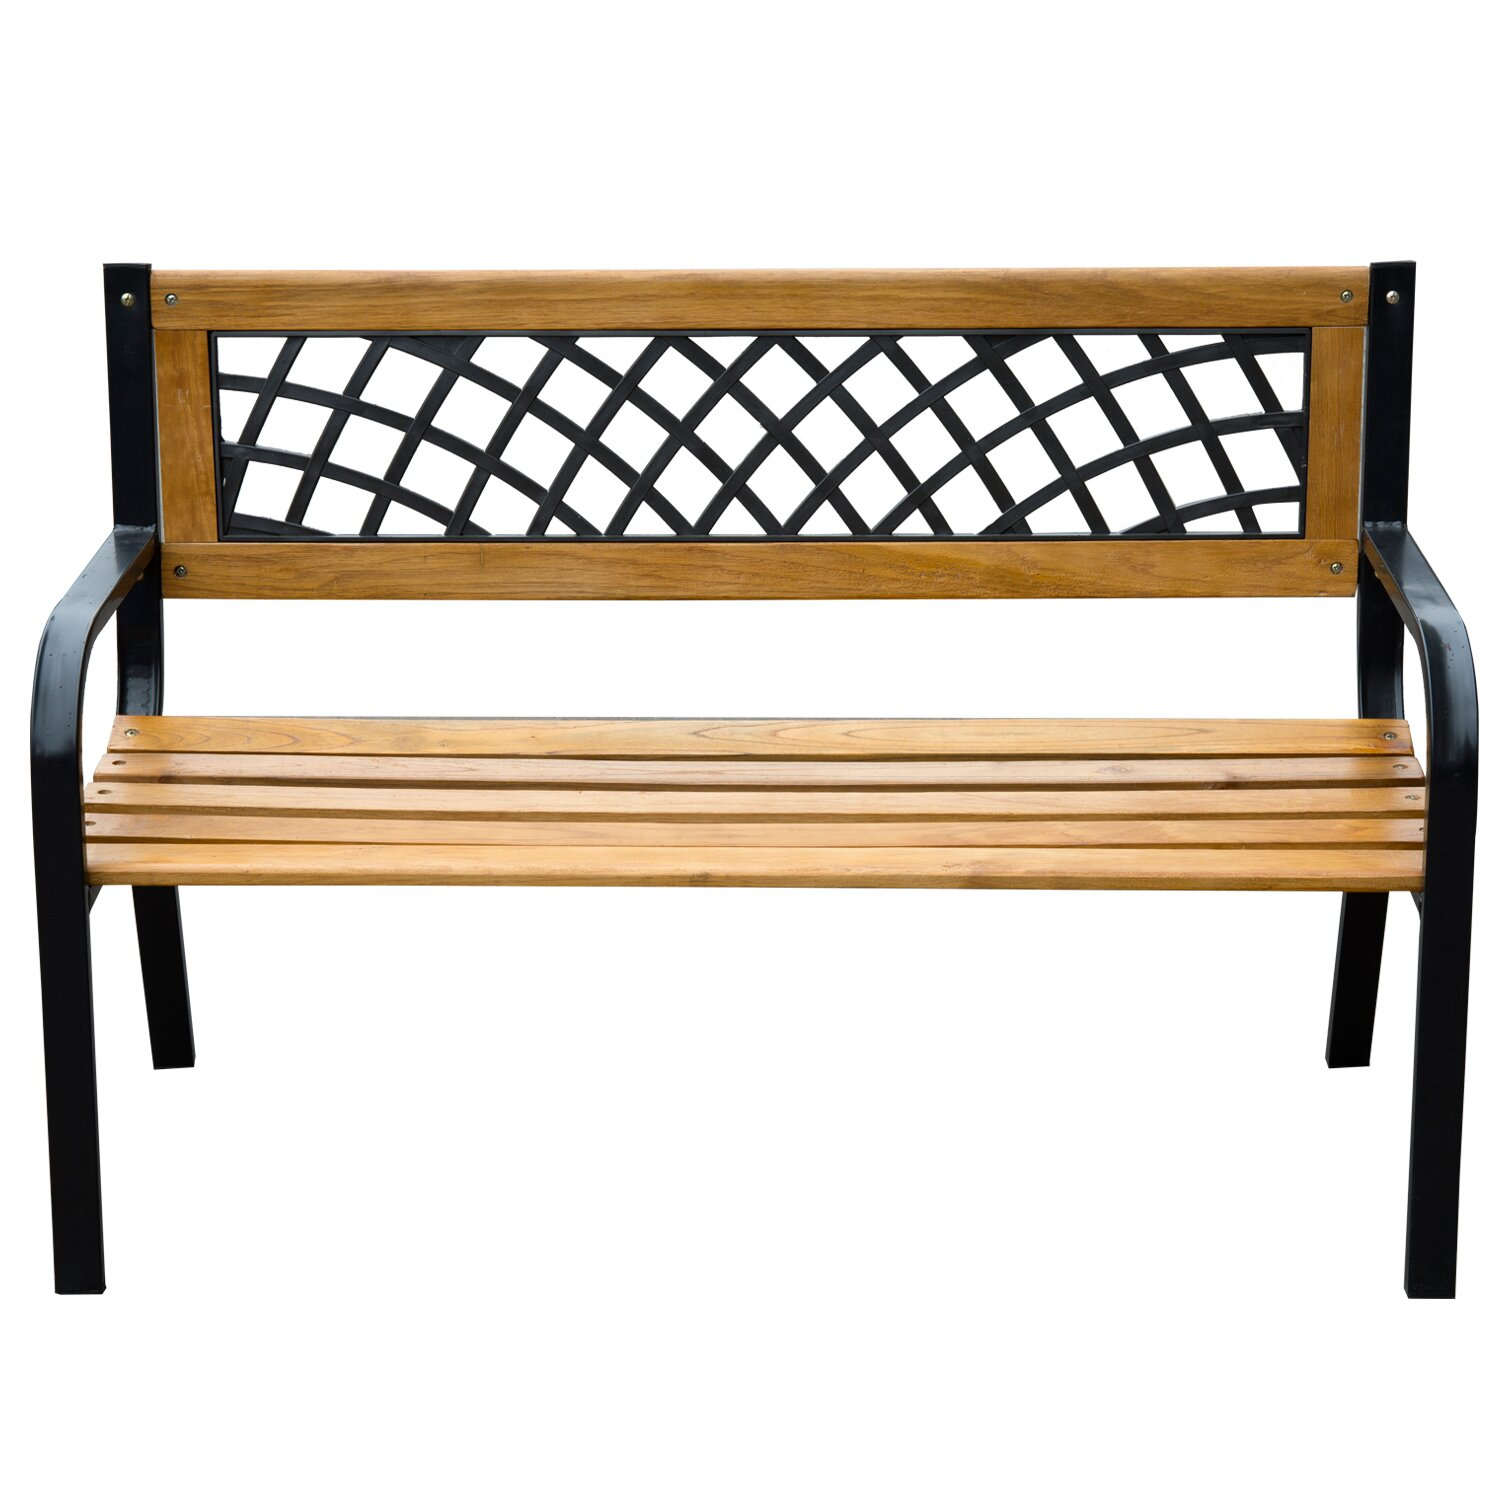 Outsunny Modern Wood Park Bench Reviews